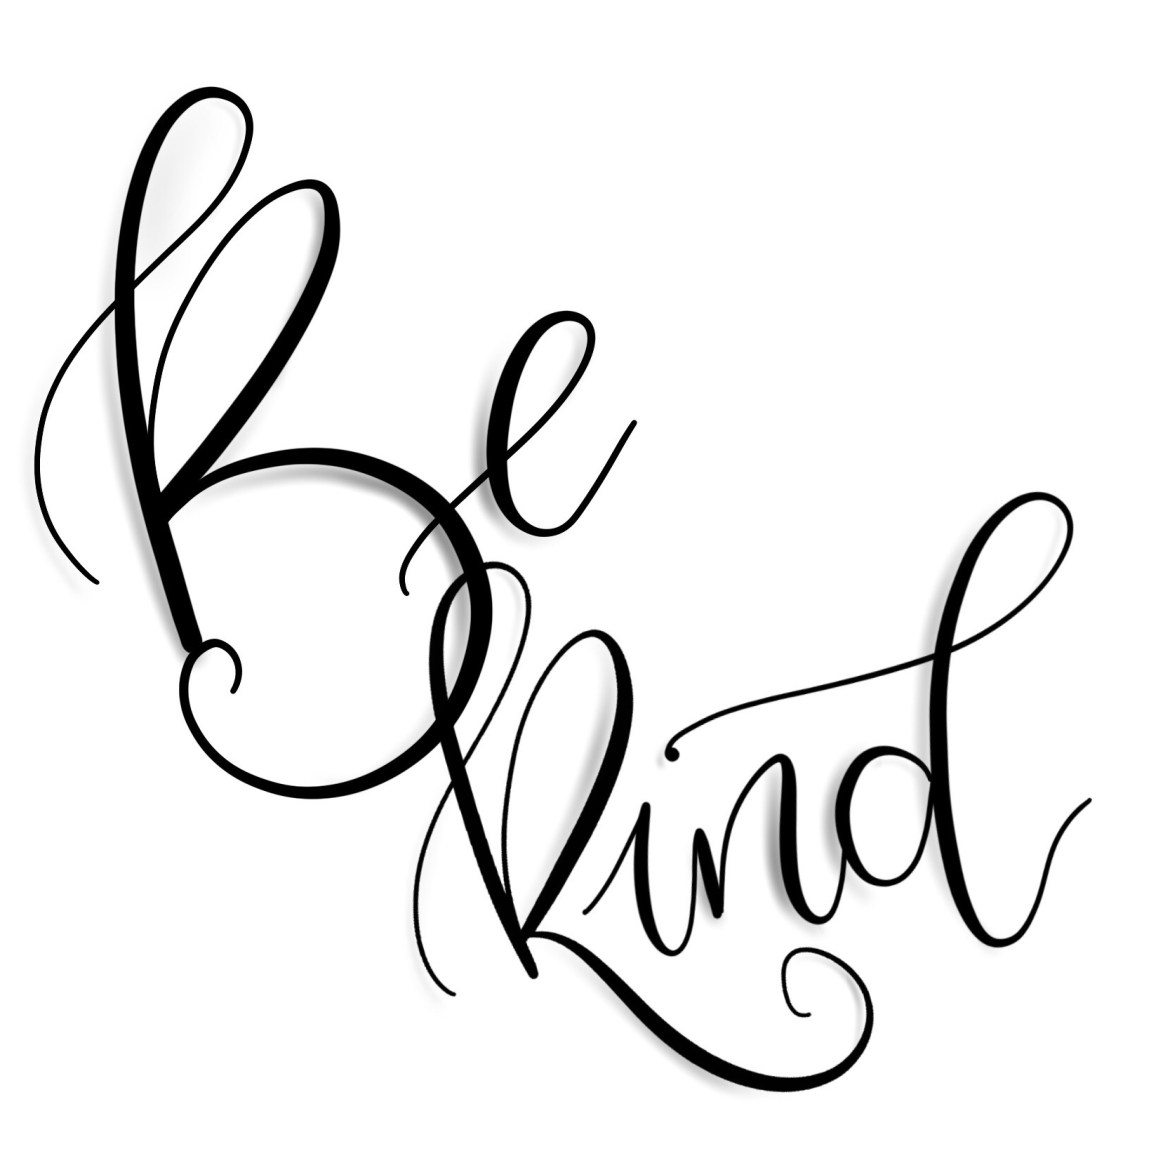 Be kind - Hand Lettering